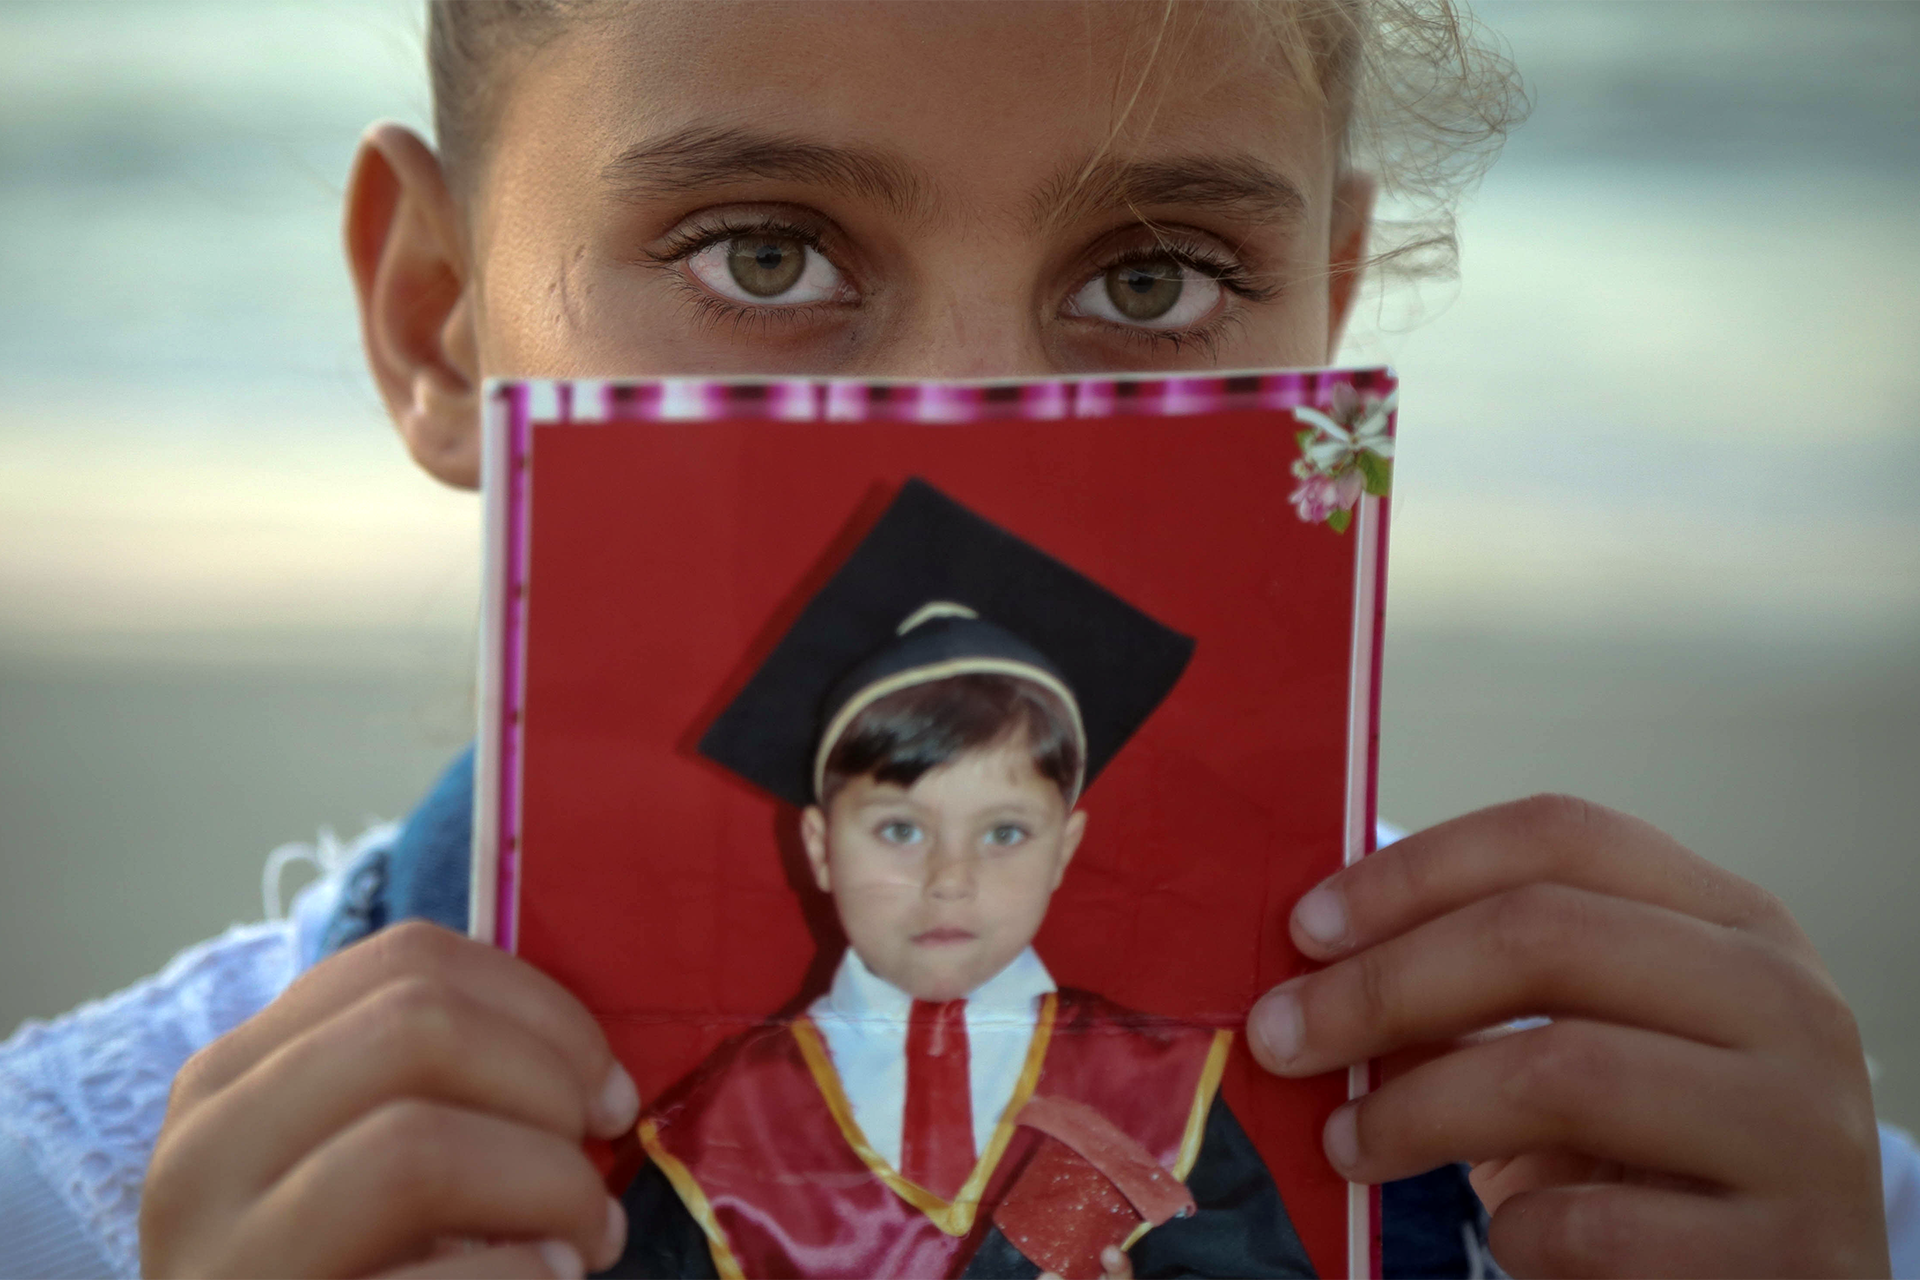 Neda al-Sayes, 11, said she never wants to swim again after her brother was believed to be killed by exposure to pollutants in the sea. (Photo: DCIP / Ezz Zanoun)